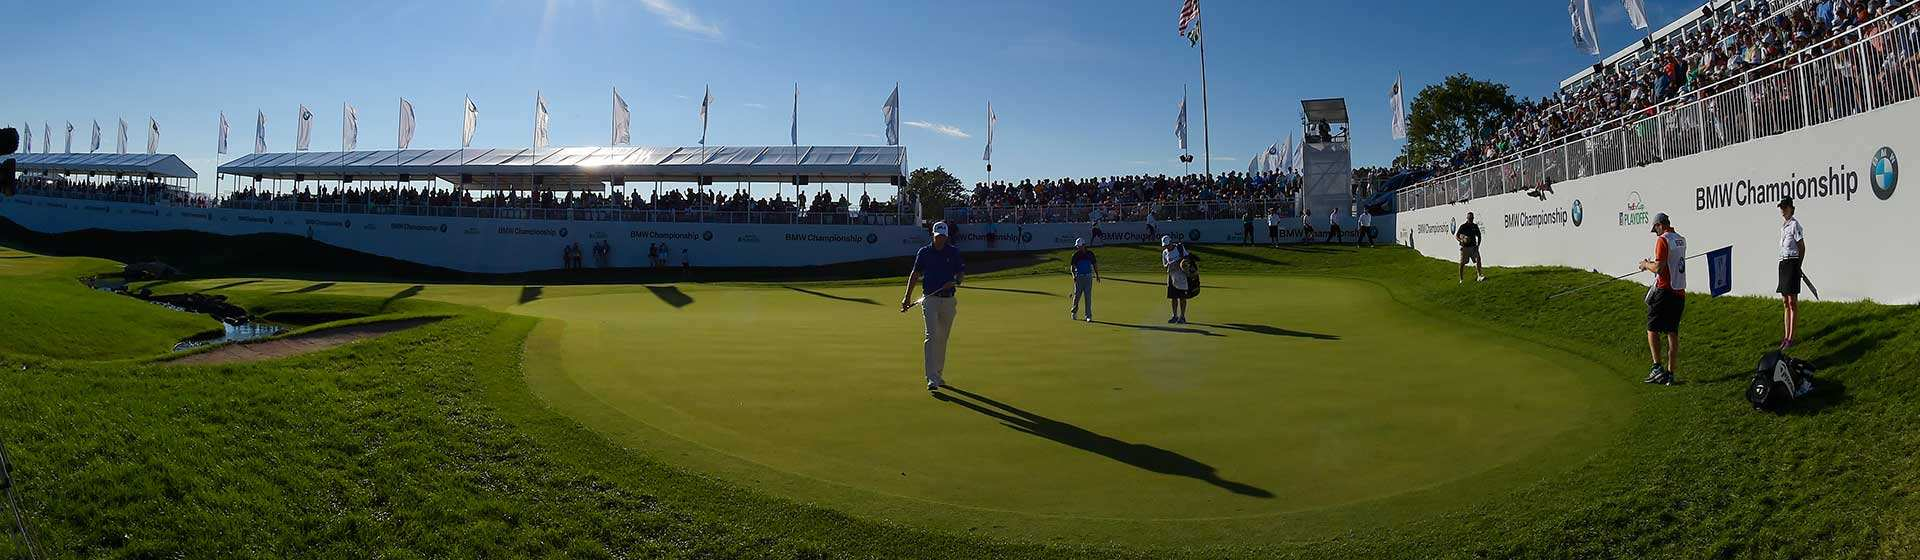 66 Great 2019 Bmw Championship Dates Ratings by 2019 Bmw Championship Dates